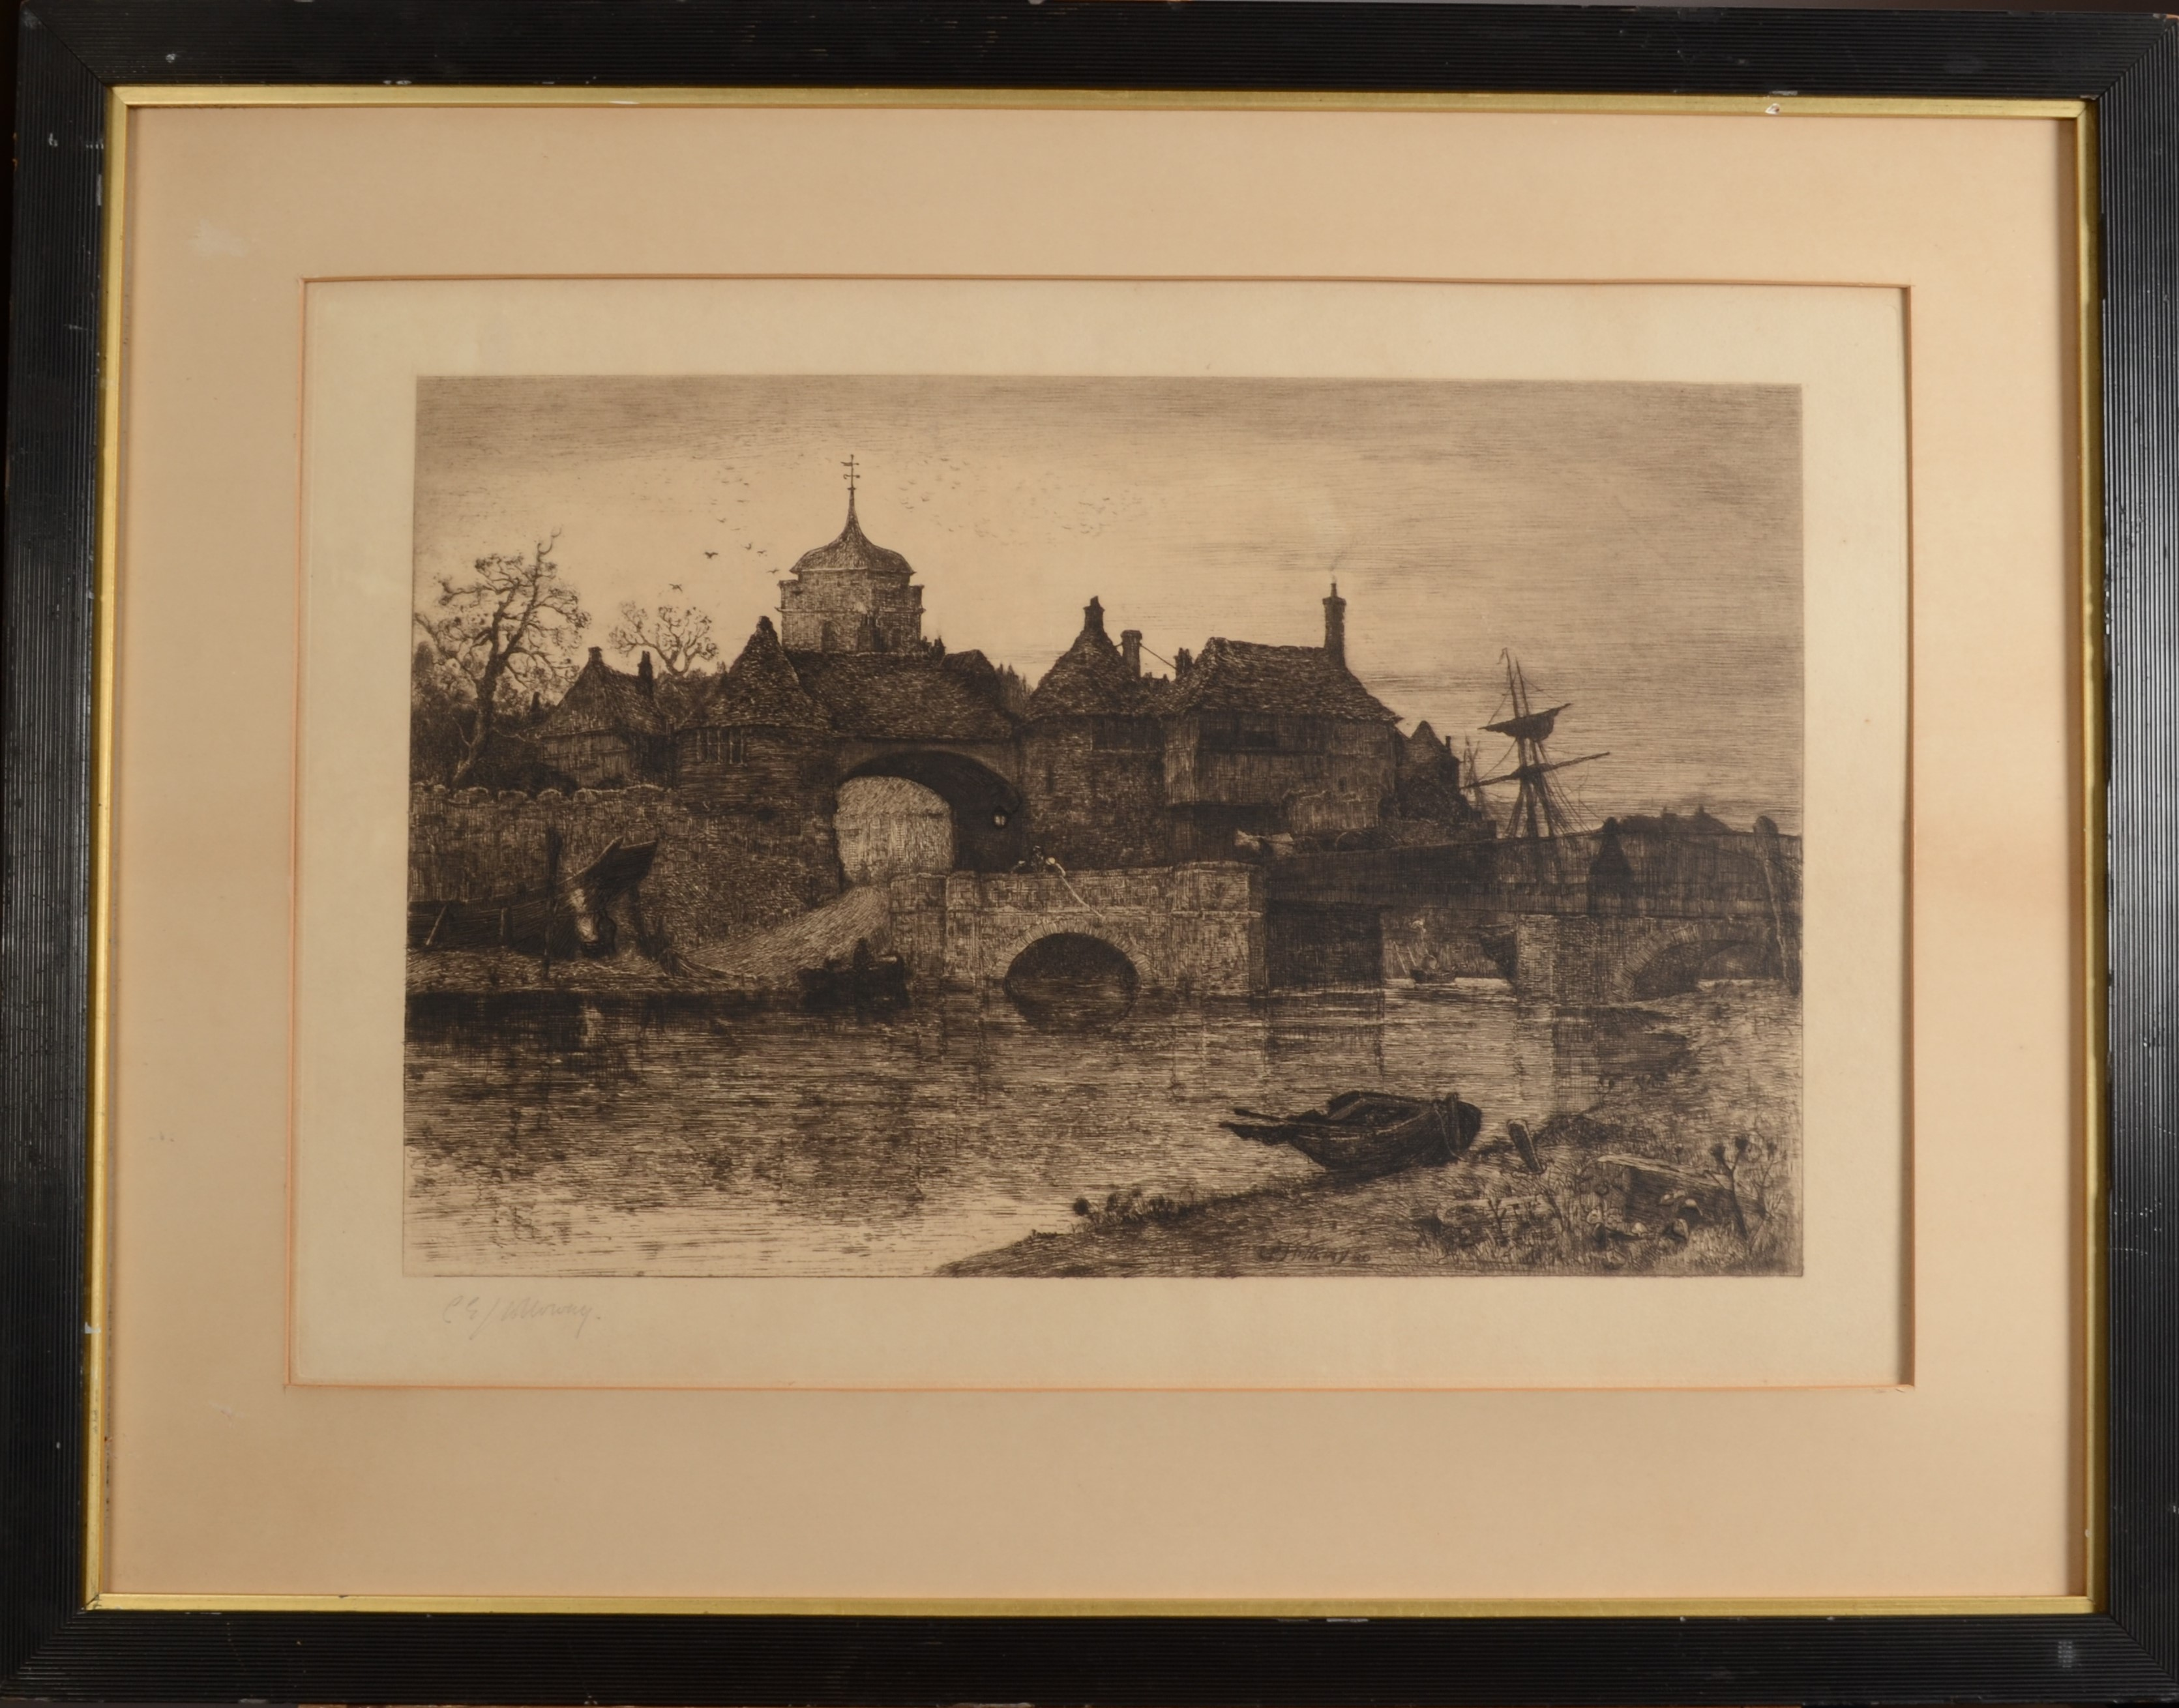 Lot 34 - CHARLES EDWARD HOLLOWAY Ships in an Estuary Engraving Signed in pencil 1882 33 x 44 cm Plus 5 other